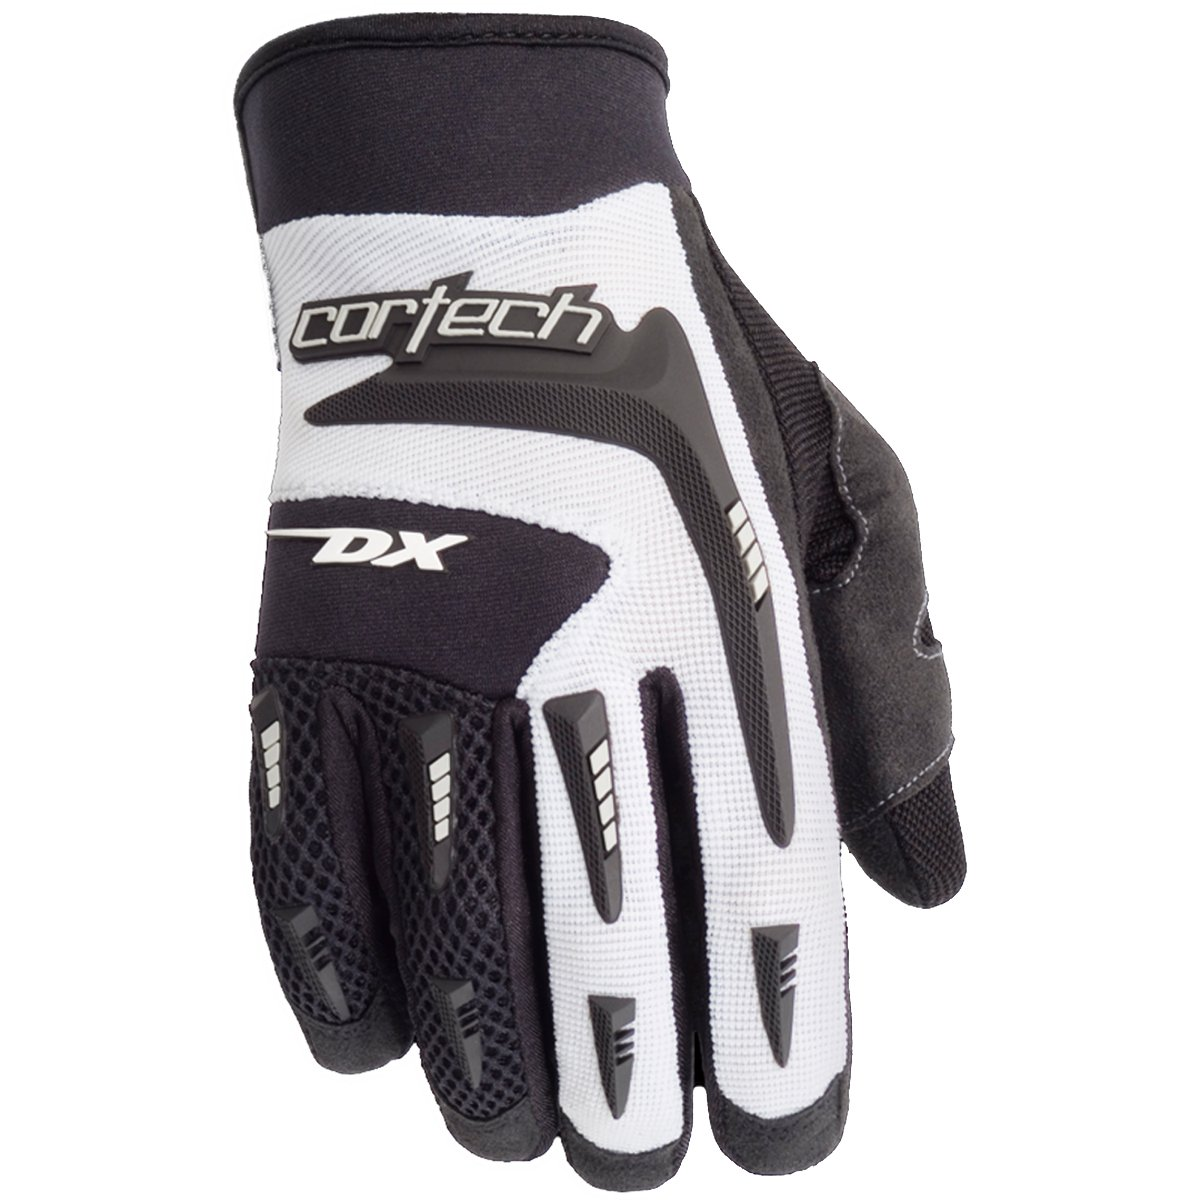 Cortech DX 2 Women's Textile Sports Bike Racing Motorcycle Gloves - Black/White/Small